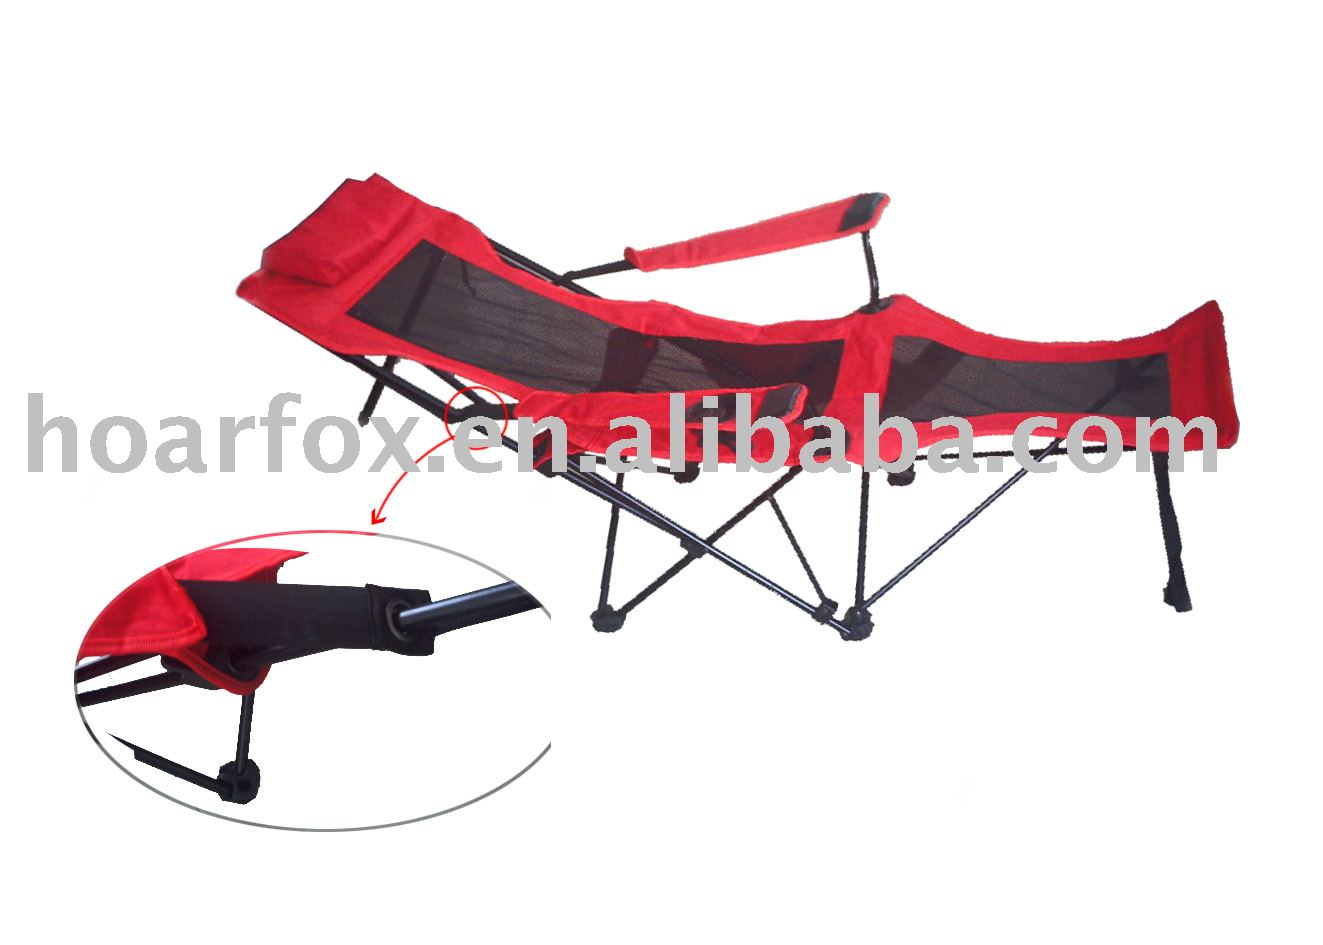 Foldable Reclining Chair Buy Lounge Chair Leisure Chair Reclining Chair Product on Alibaba